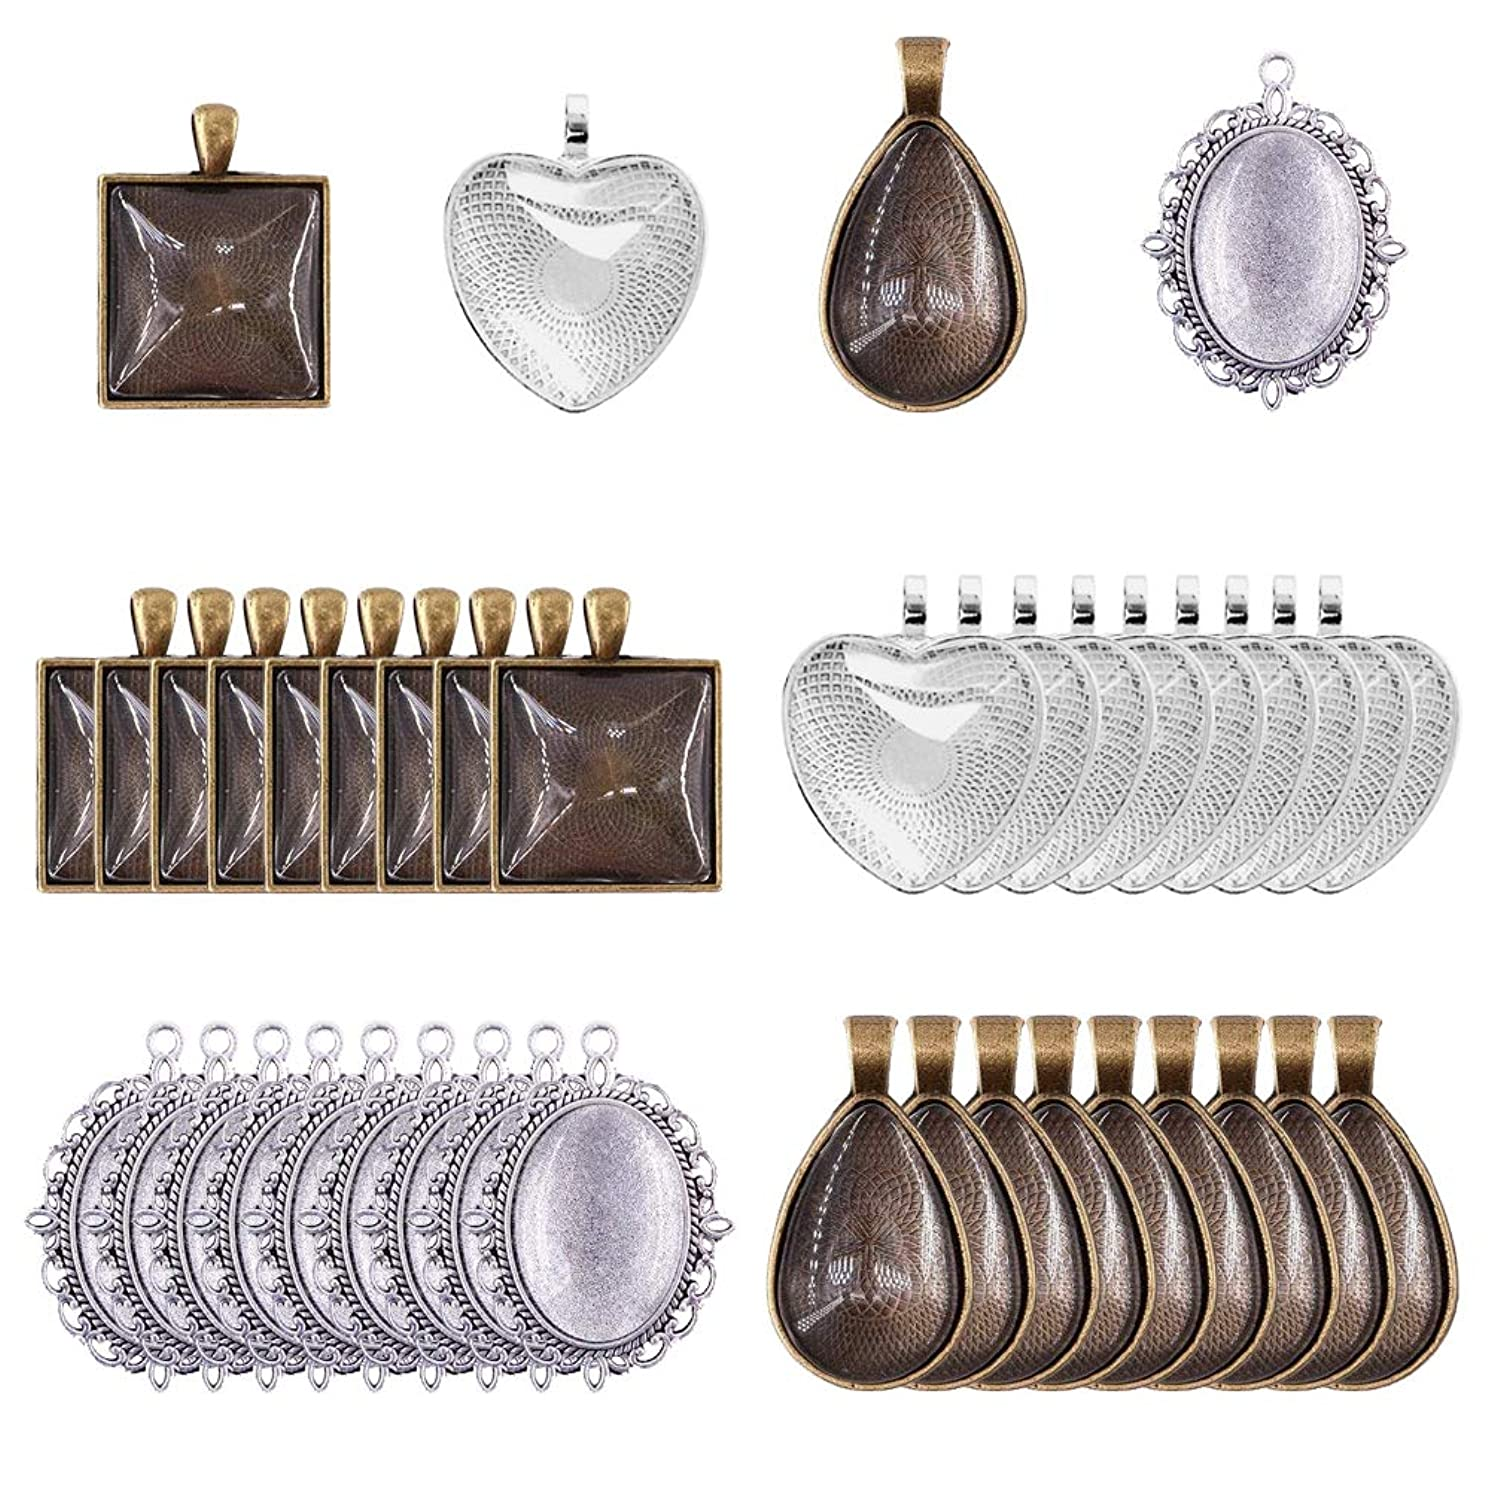 72Pieces 4 Styles Pendant Trays 36pcs Square,Teardrop,Heart and Oval and 36pcs Bright Glass Cabochon Dome Tiles for Crafting DIY Jewelry Gift Making